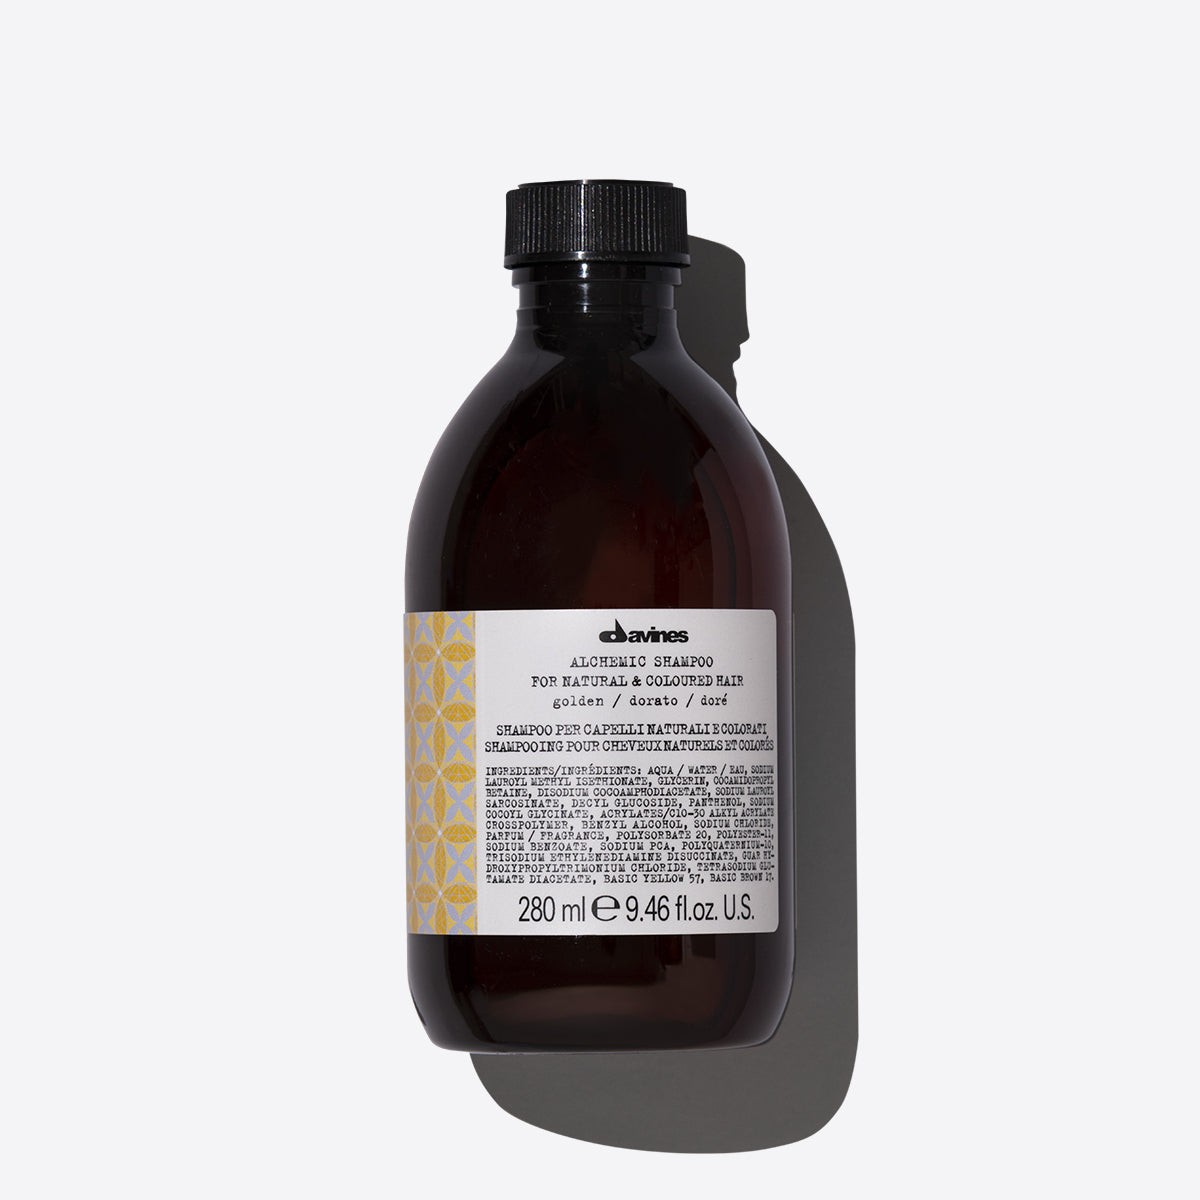 ALCHEMIC Shampoo Golden 1  280 ml / 9,47 fl.oz.Davines